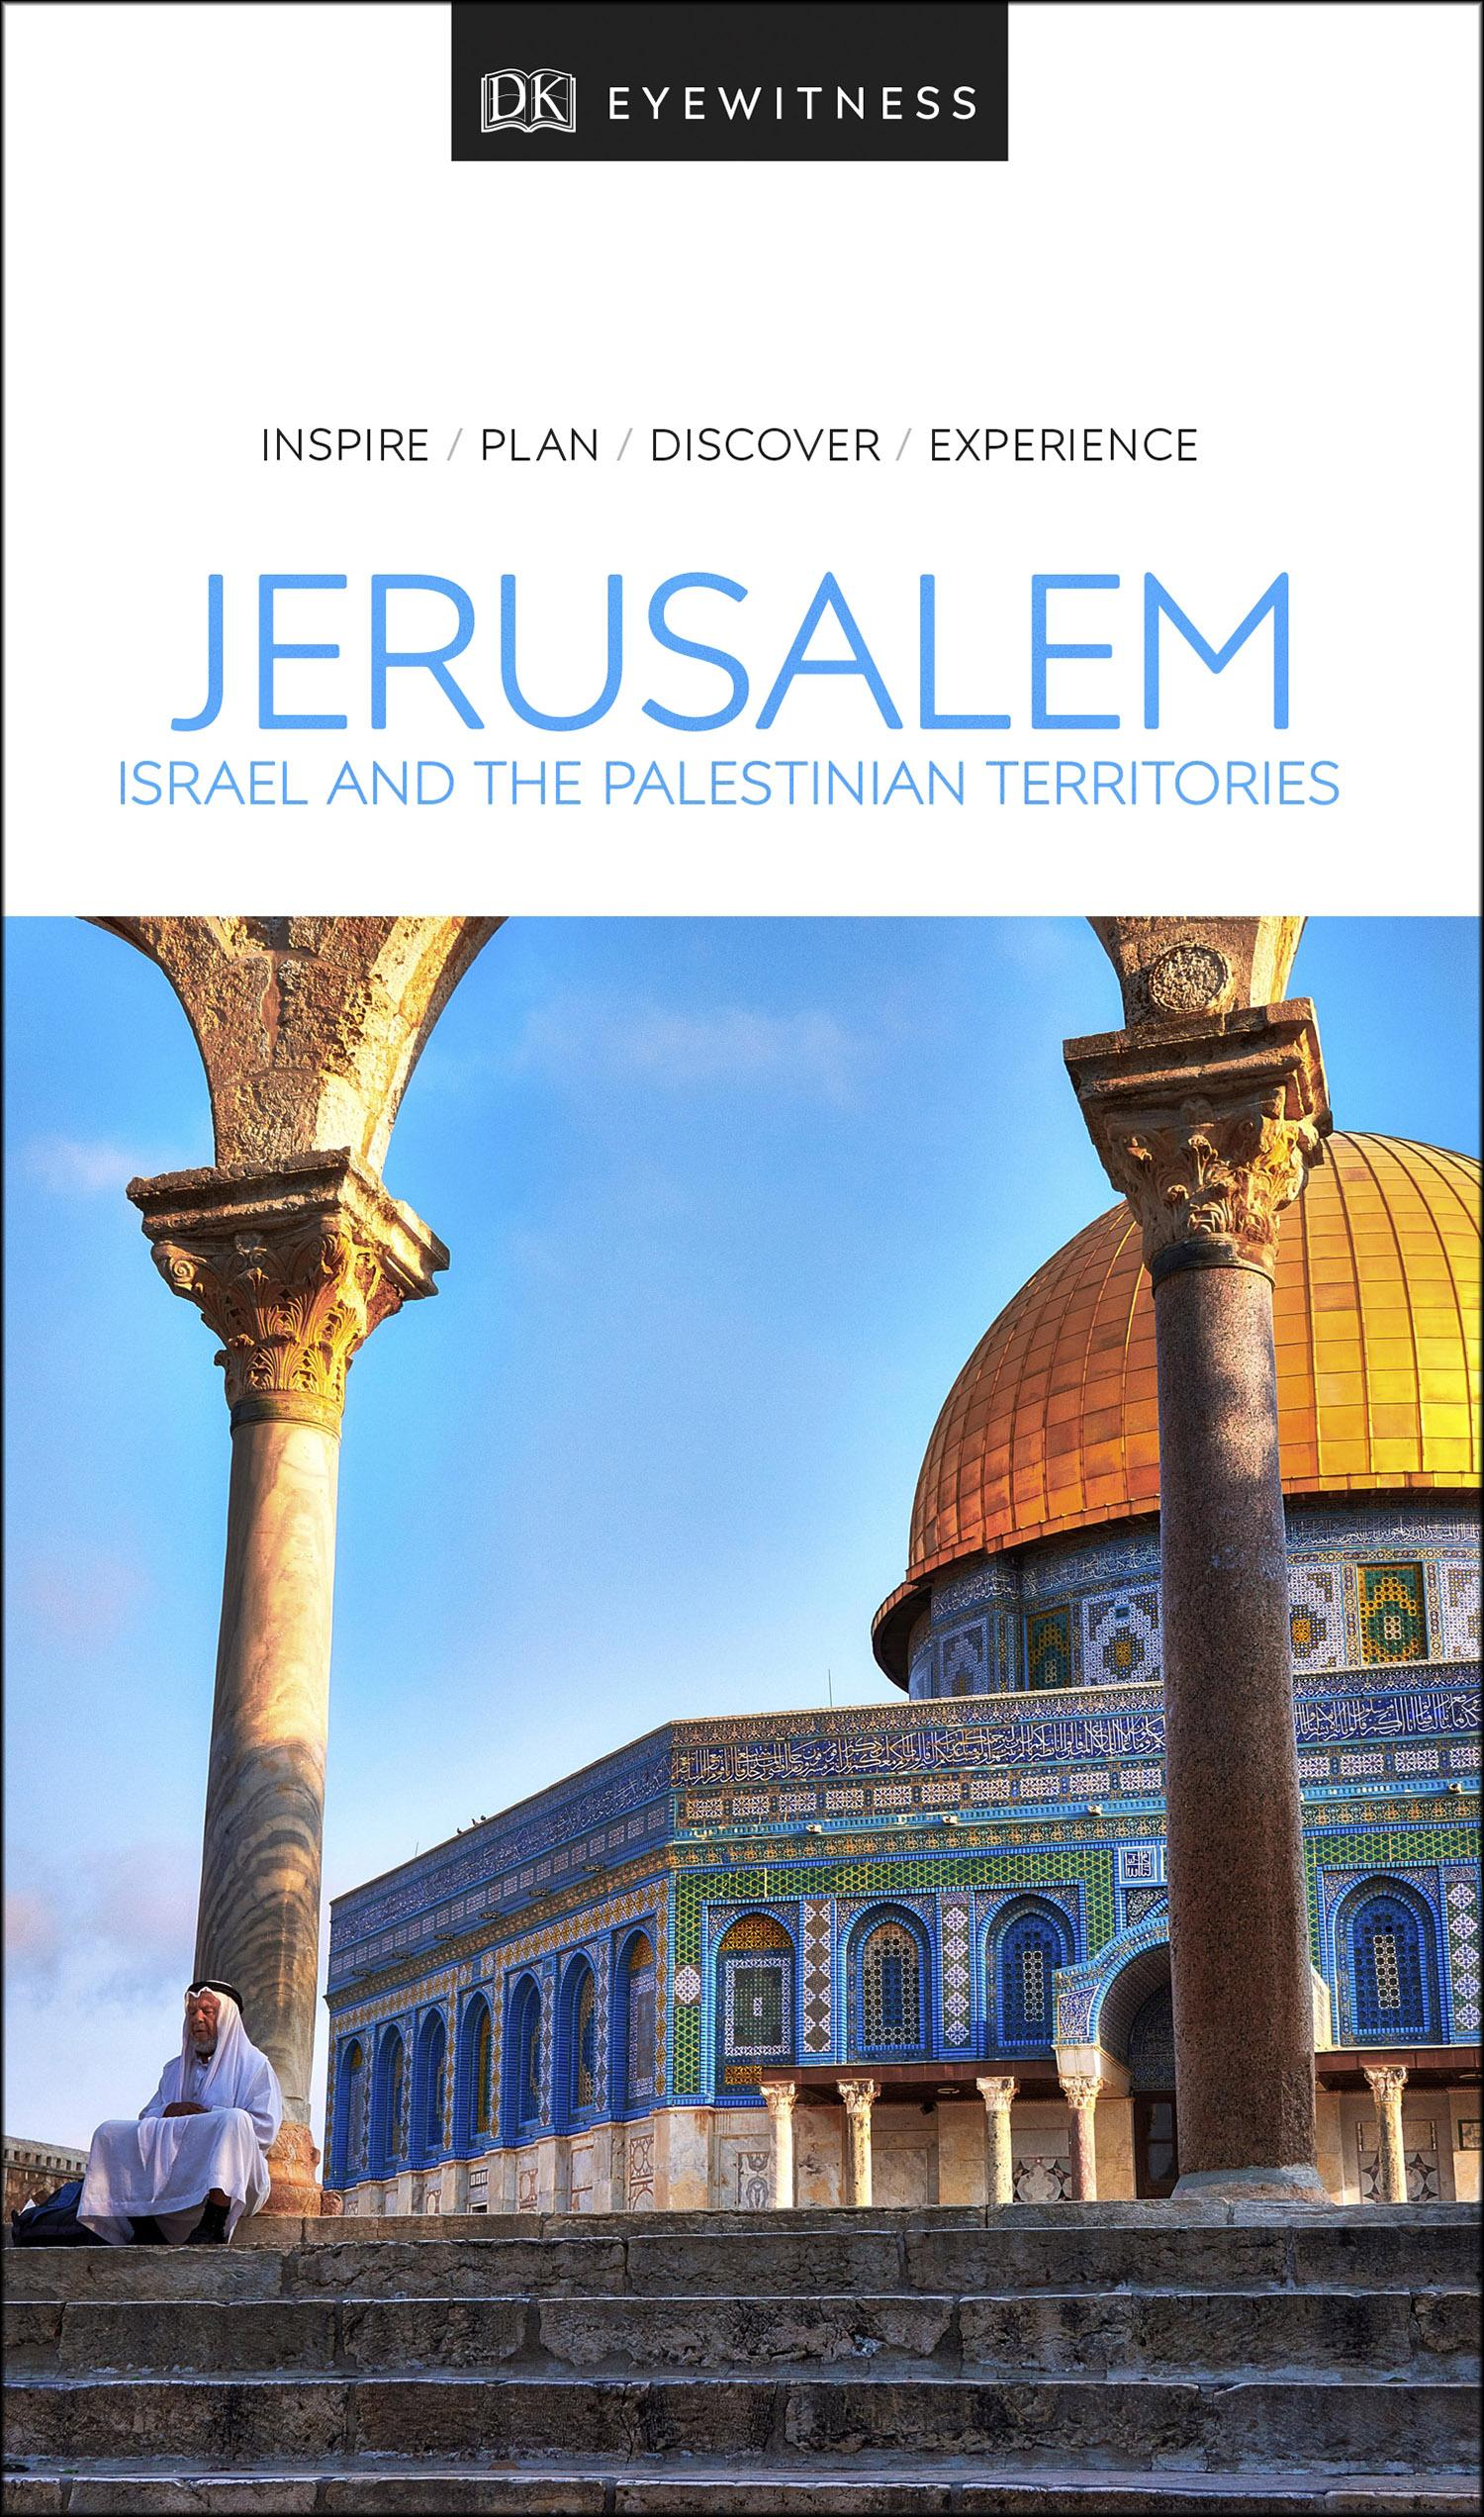 DK Eyewitness Travel Guide Jerusalem, Israel and the Palestinian Territories by Unknown Author